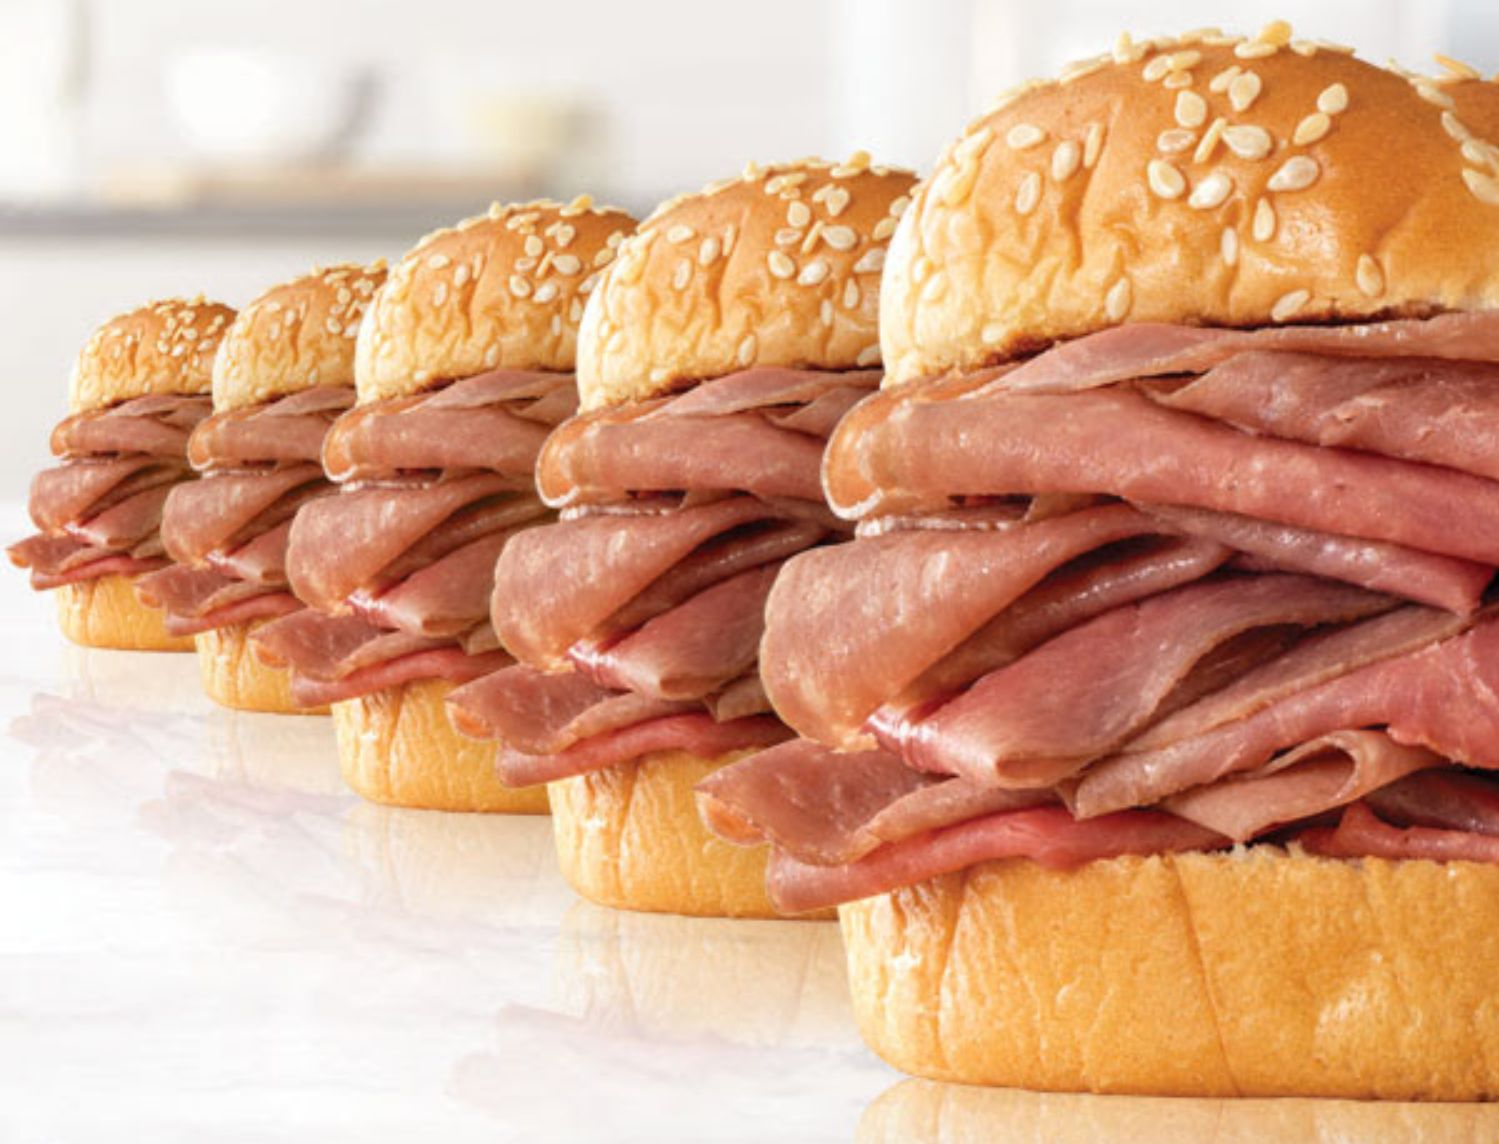 Get 5 Classic Roast Beef Sandwiches for Only $10 from Arby's